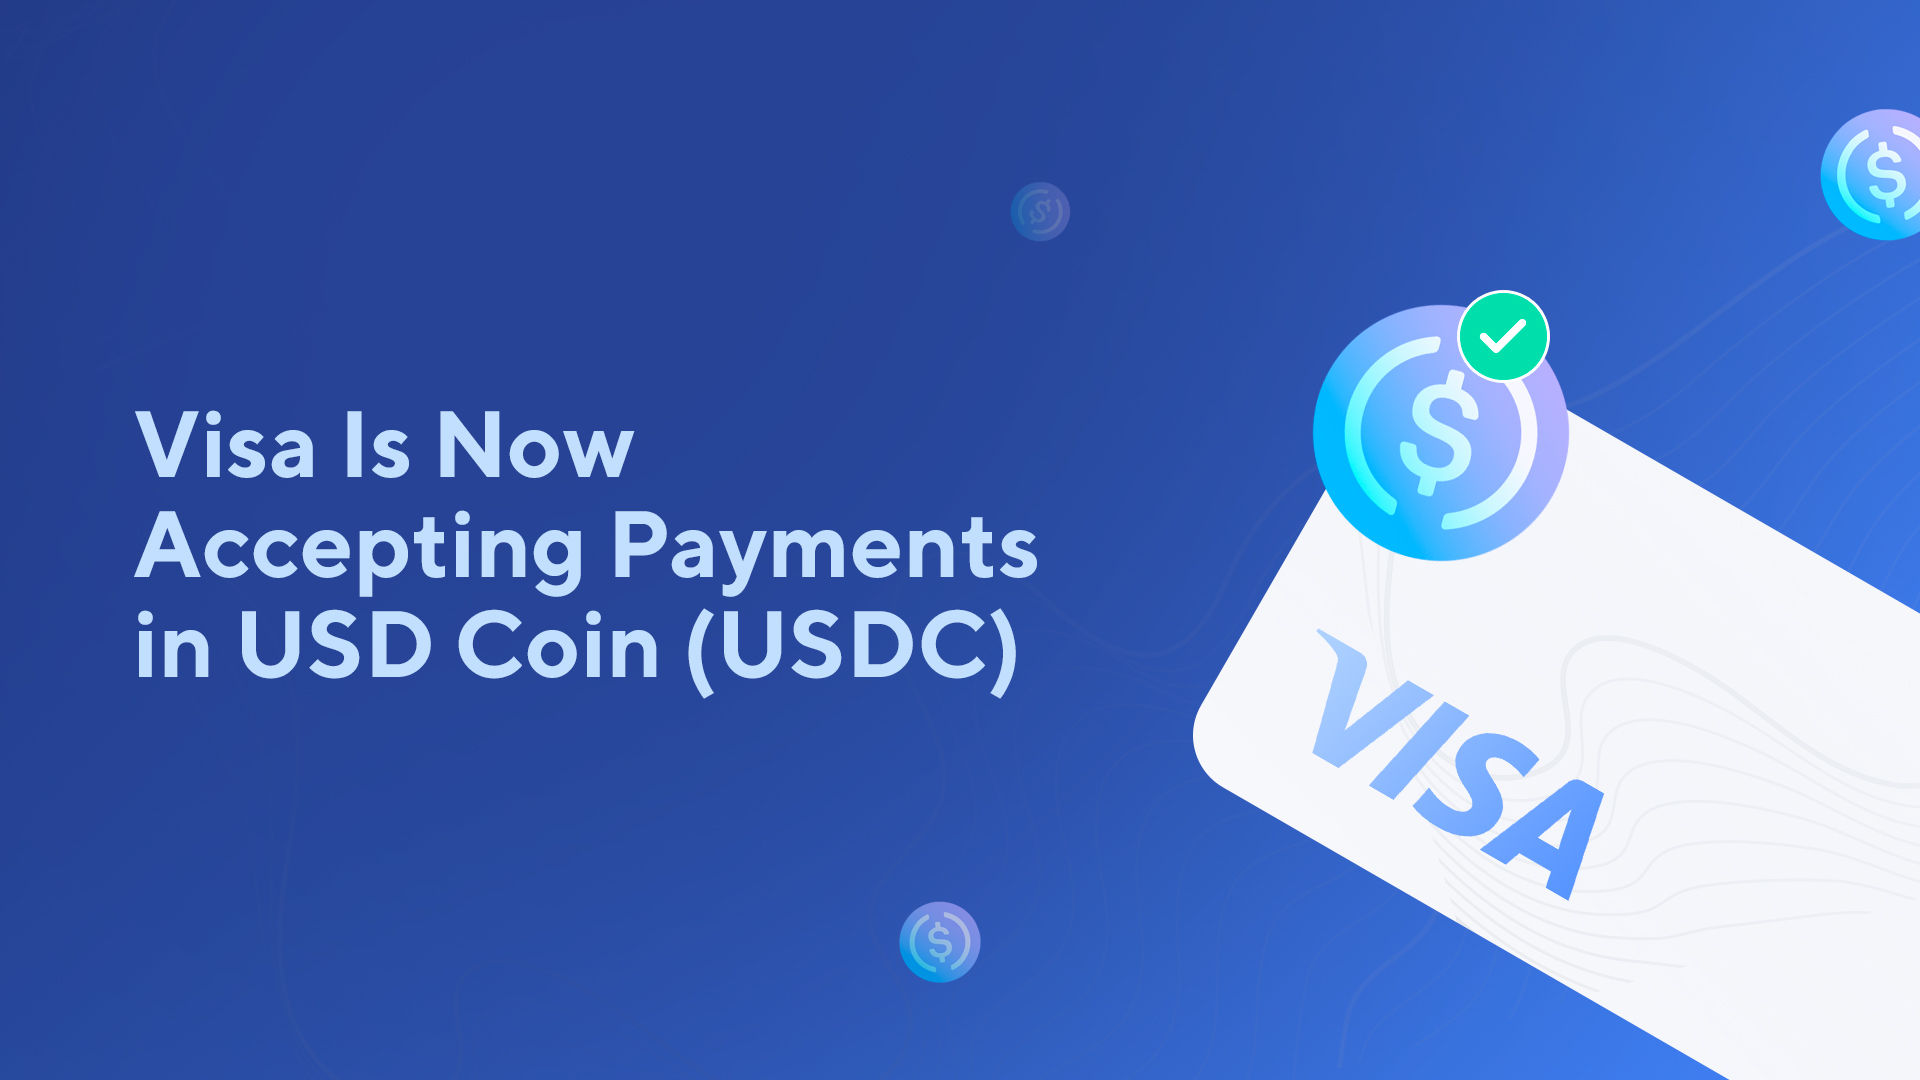 Visa Is Now Accepting Payments in USD Coin (USDC)